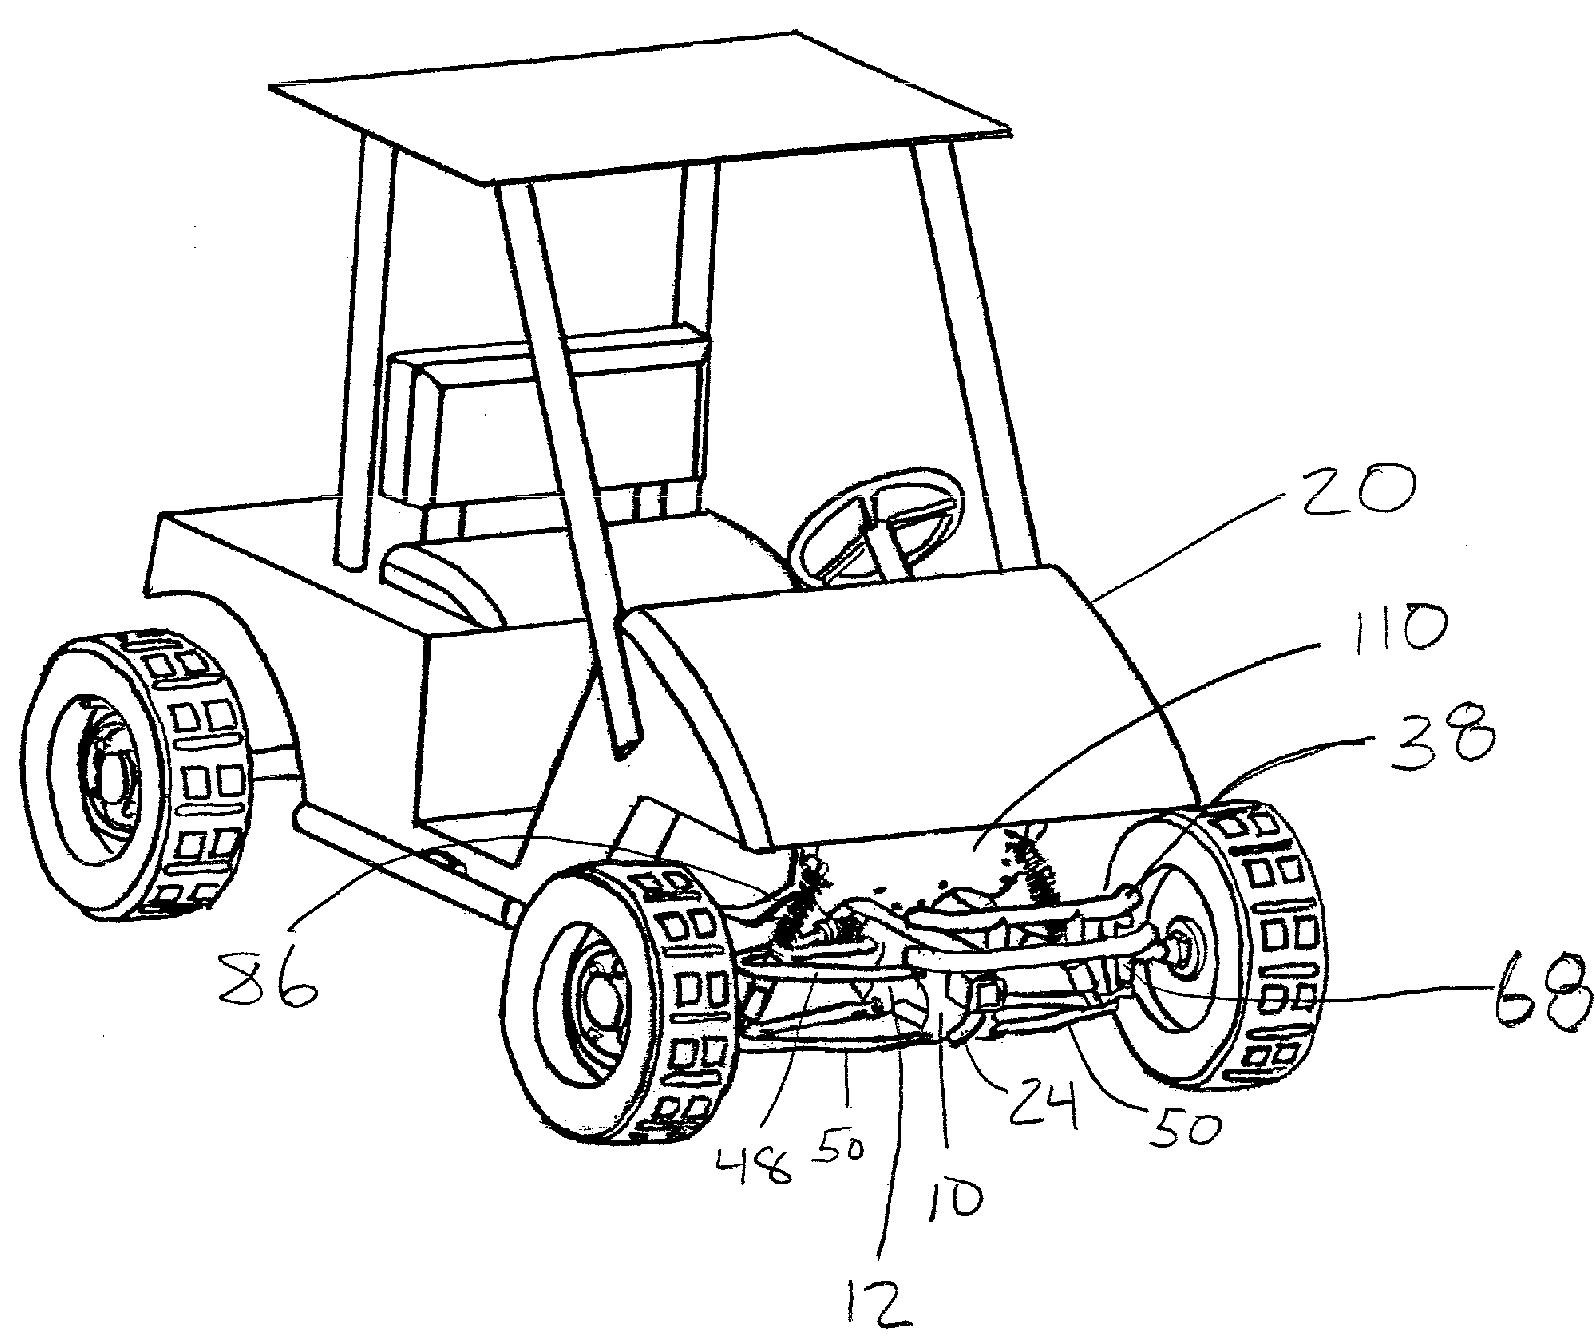 Car Front Suspension Diagram Just What Every Golf Cart Needs A Lift Kit Golf Patents Of Car Front Suspension Diagram